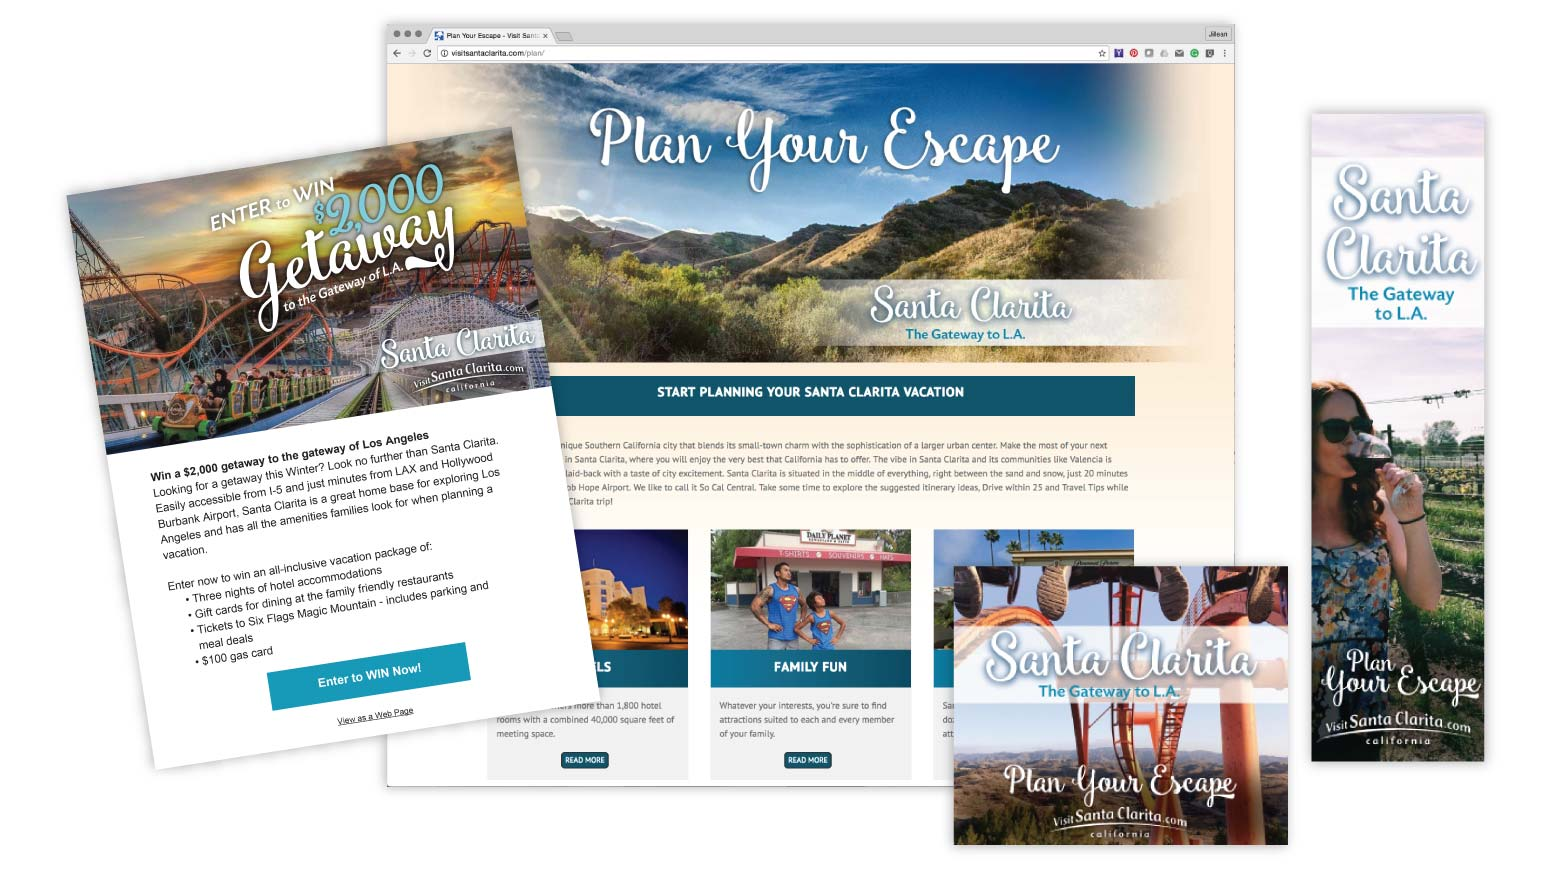 Visit Santa Clarita California - Tourism Marketing